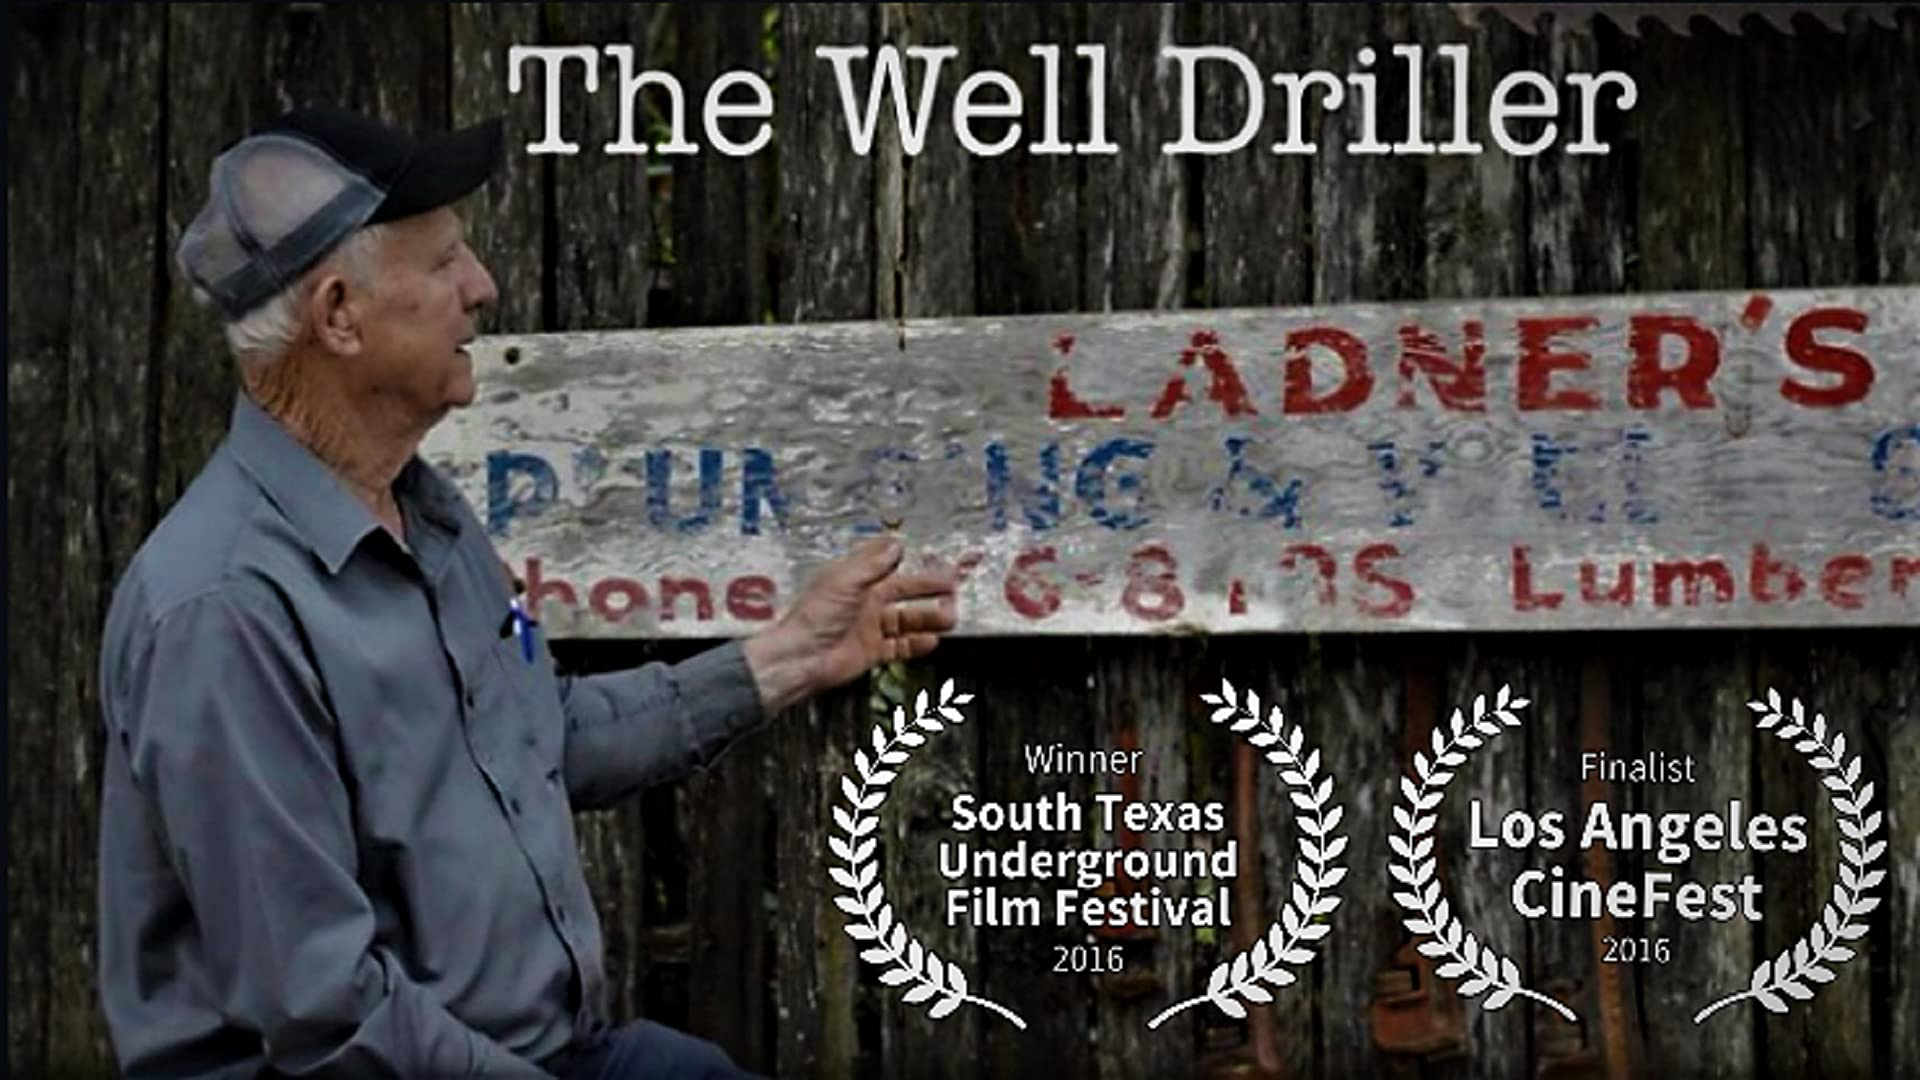 The Well Driller